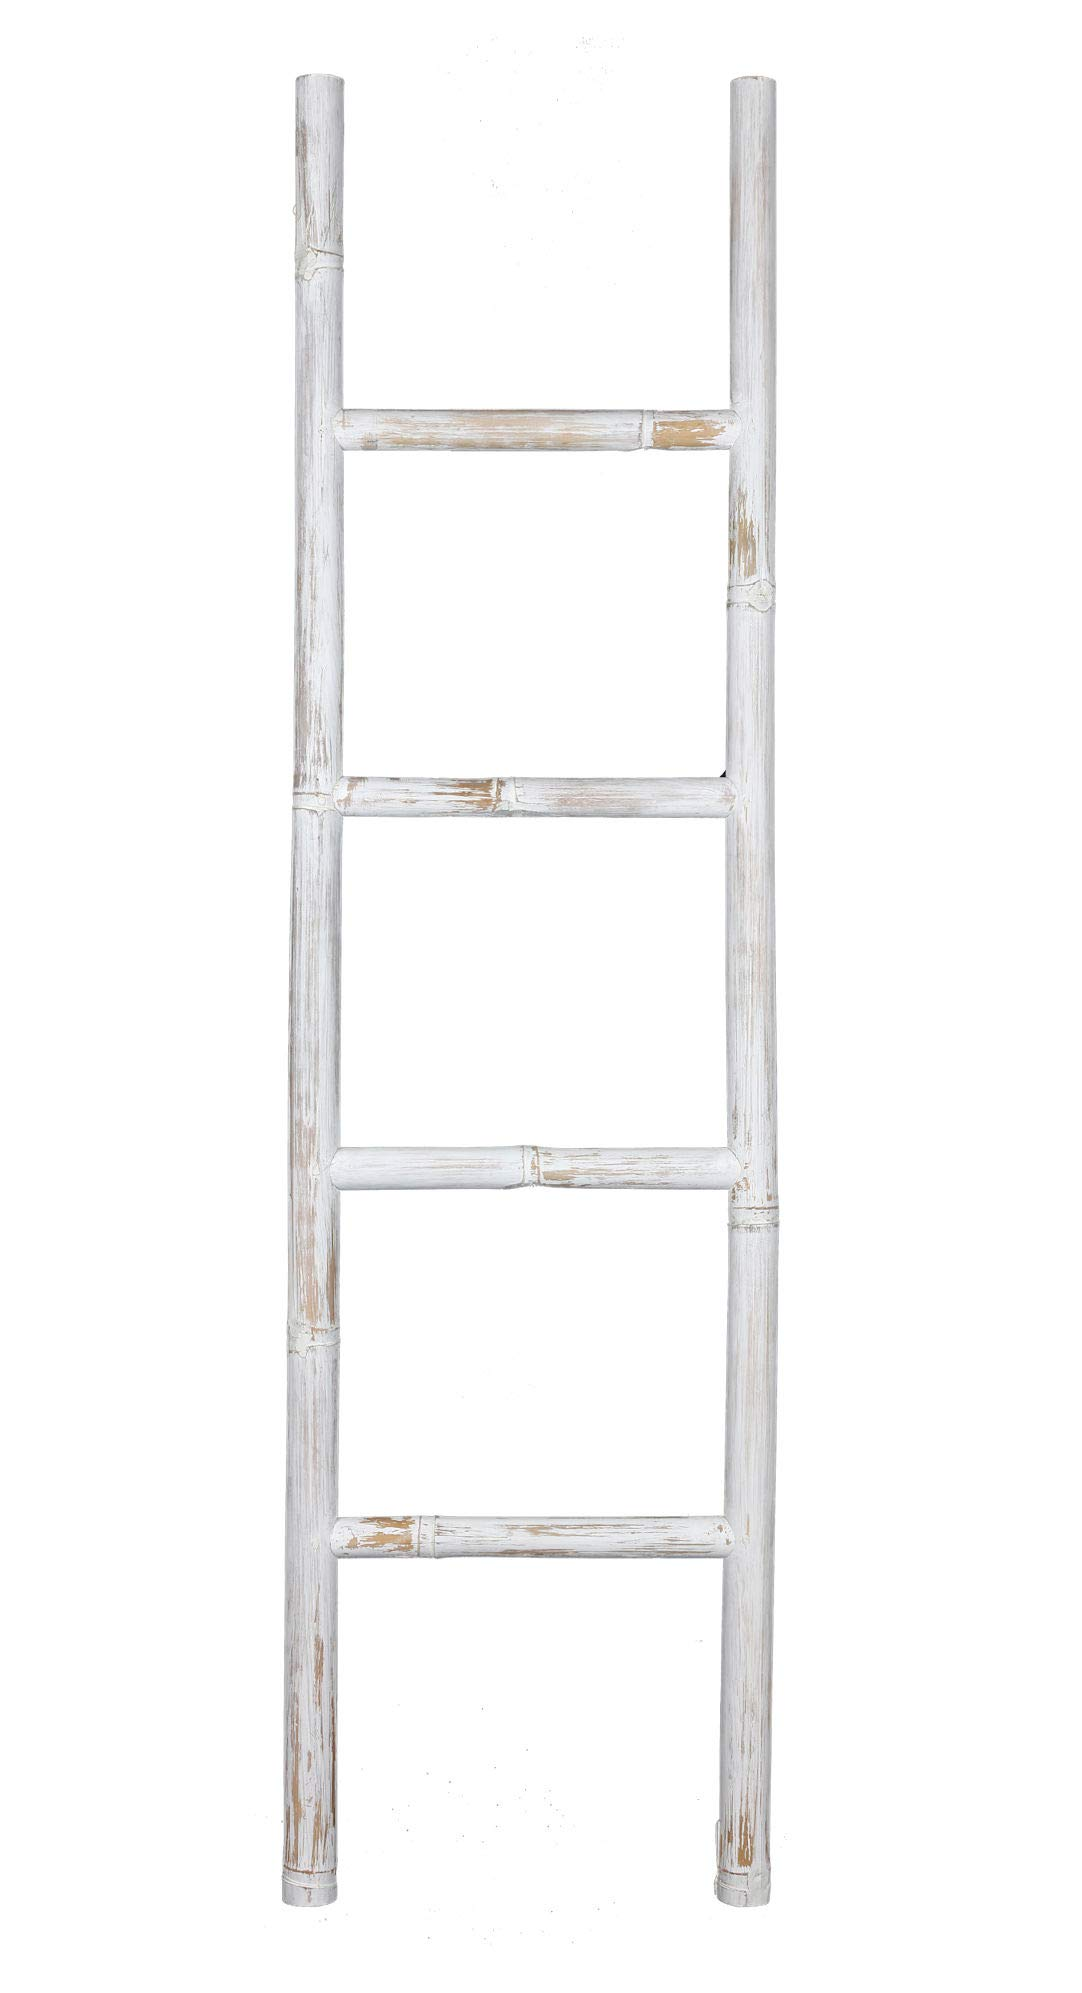 Escalera decorativa de bambú (150 x 40 cm), color blanco: Amazon.es: Hogar